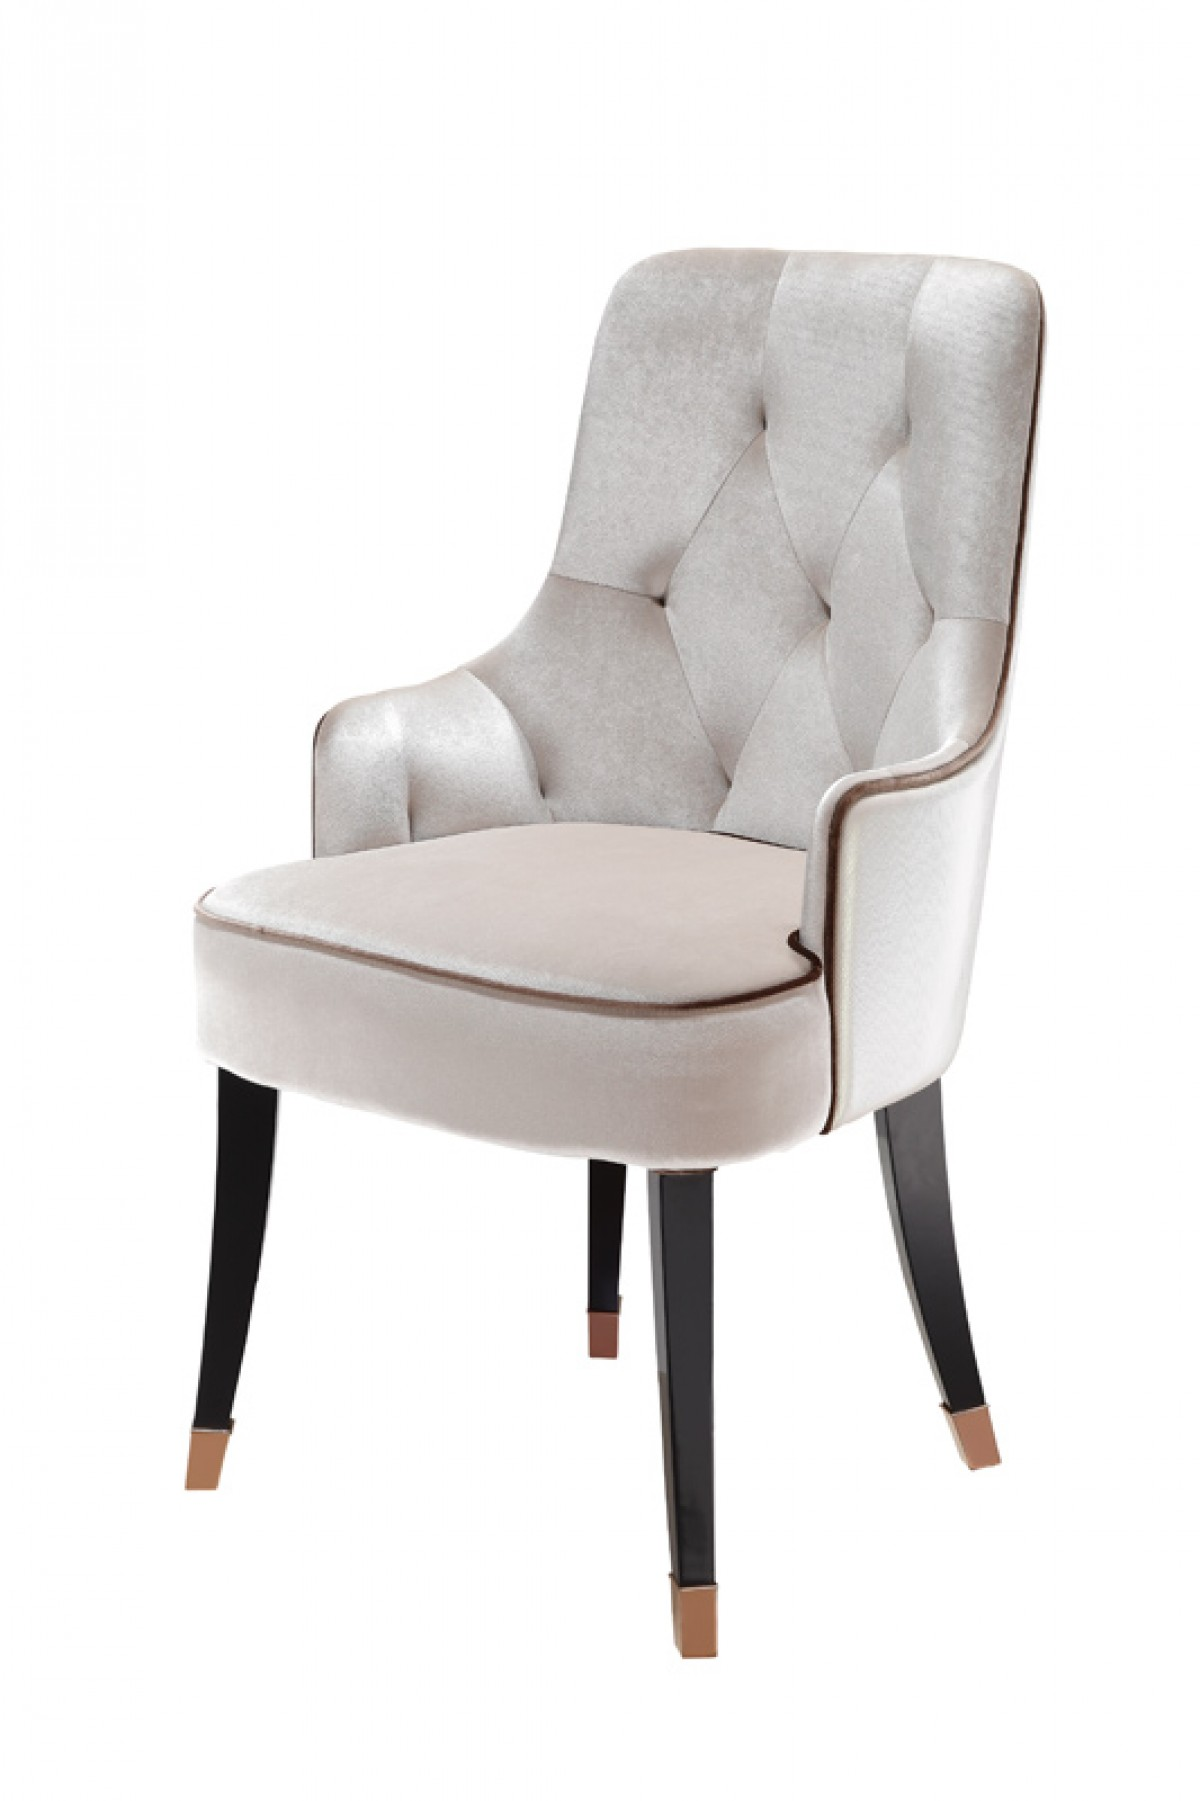 A Amp X Larissa Modern White Fabric Dining Chair